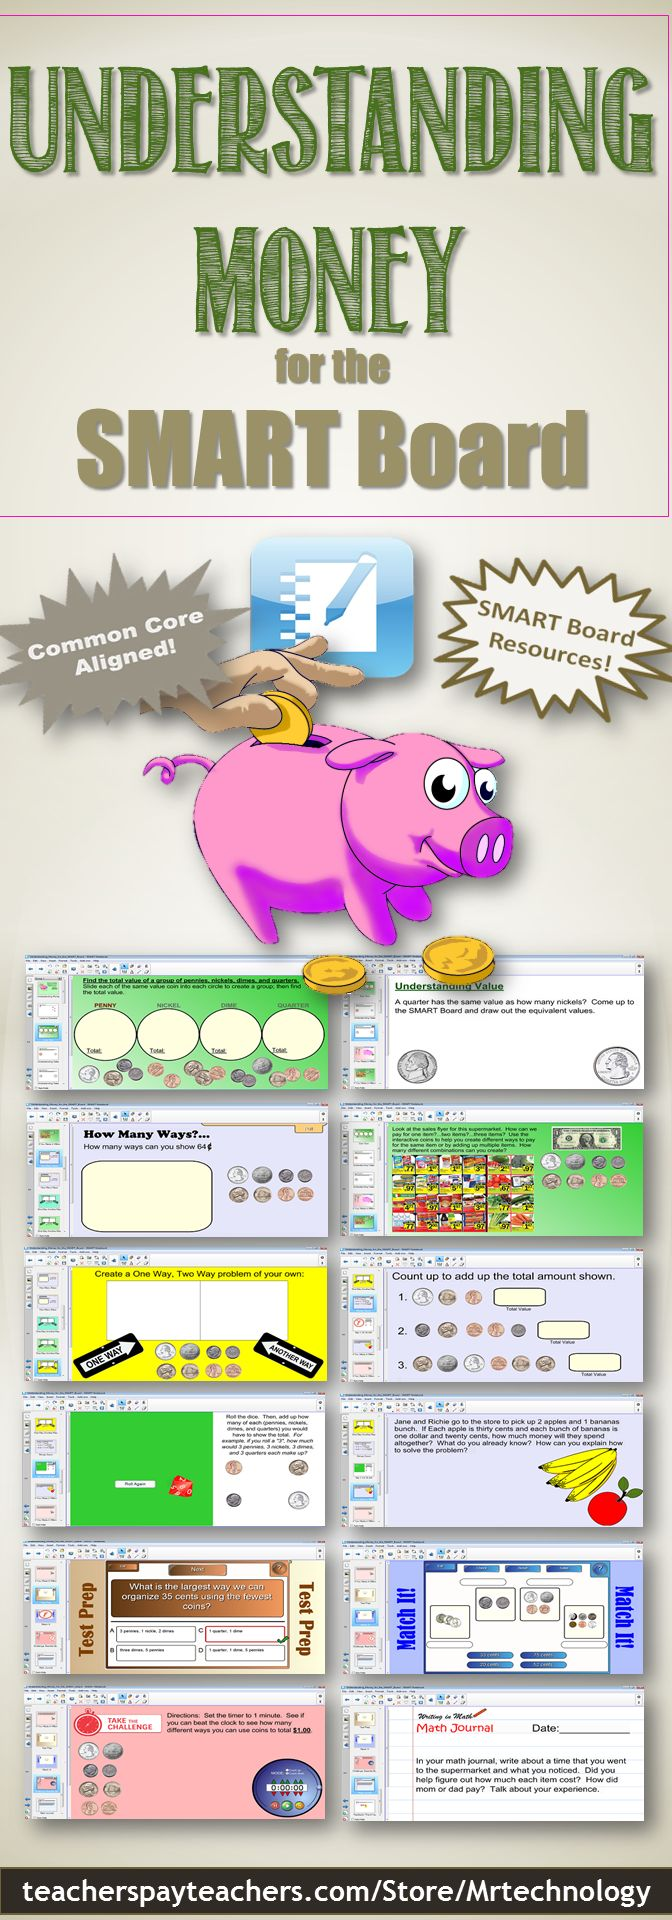 NEW to the SMART Board lineup from MrTechnology!  This CCSS-aligned interactive SMART Board lesson allows students to explore different interactive ways to understand the concept and value of money.  Interactive SMART Board activities include  •Ordering from least to greatest •Coin sort •Understanding value •How much is...? •How many ways? •One way / Another Way •Money Count •Word Problems •Test Prep (multiple choice) •Match It! •Challenge: Beat the Clock •Math Journal Question